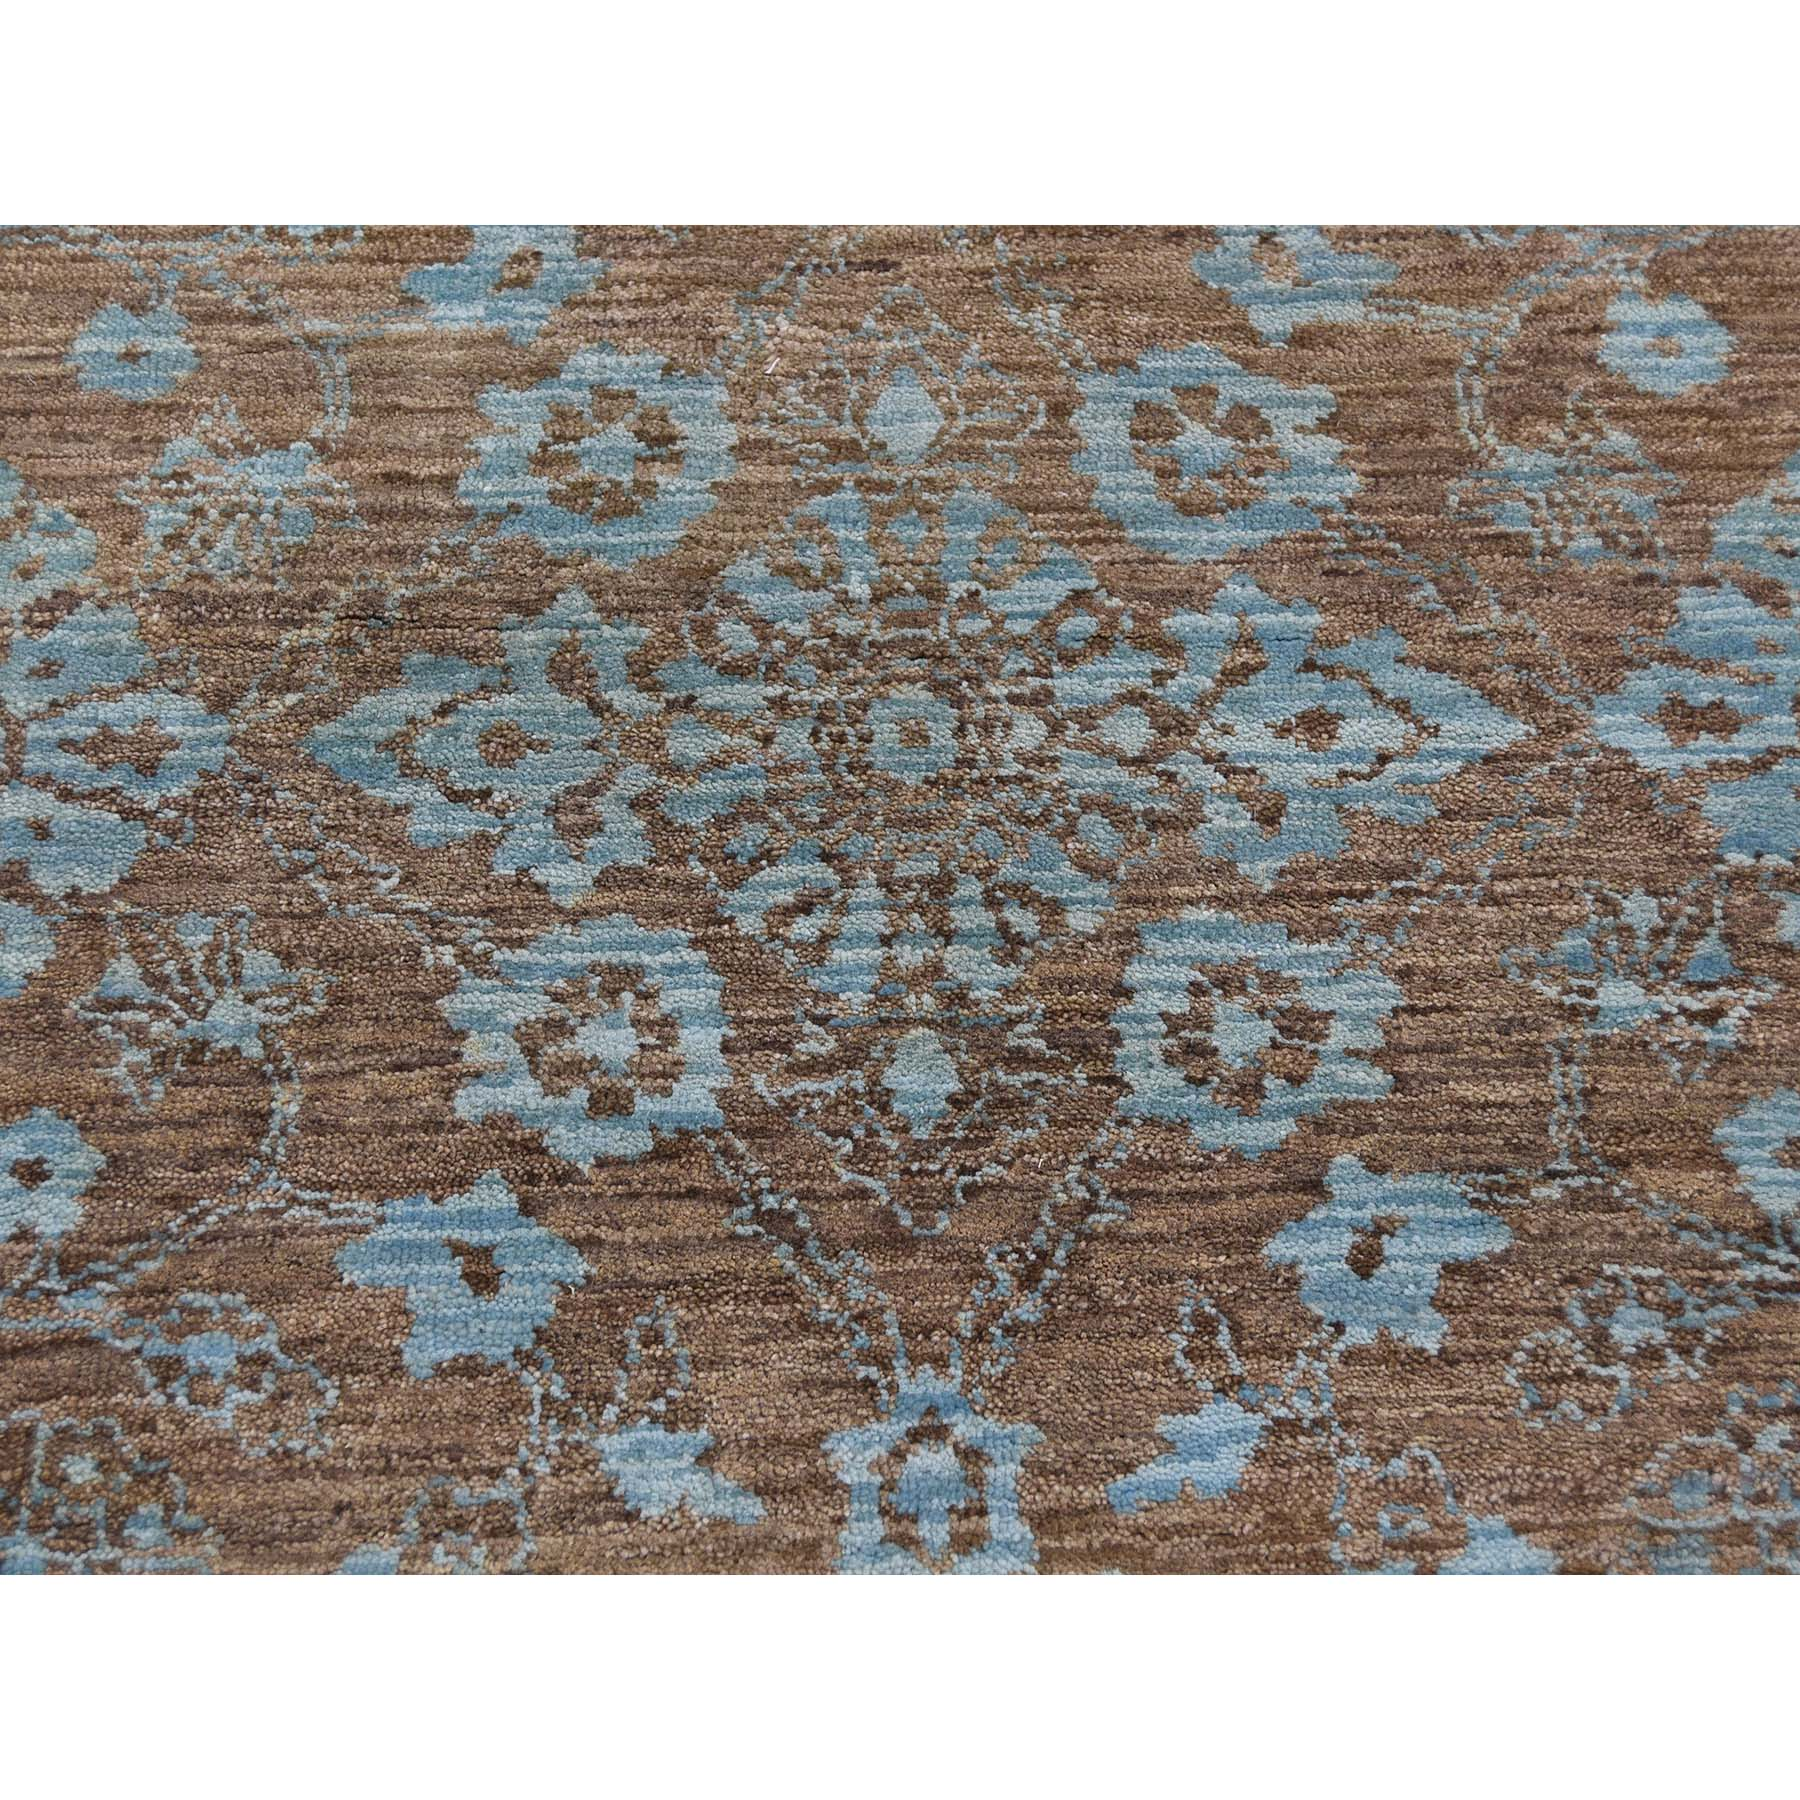 9-x12-10  Modern Broken Pattern Transitional Design Hand Knotted Oriental Rug